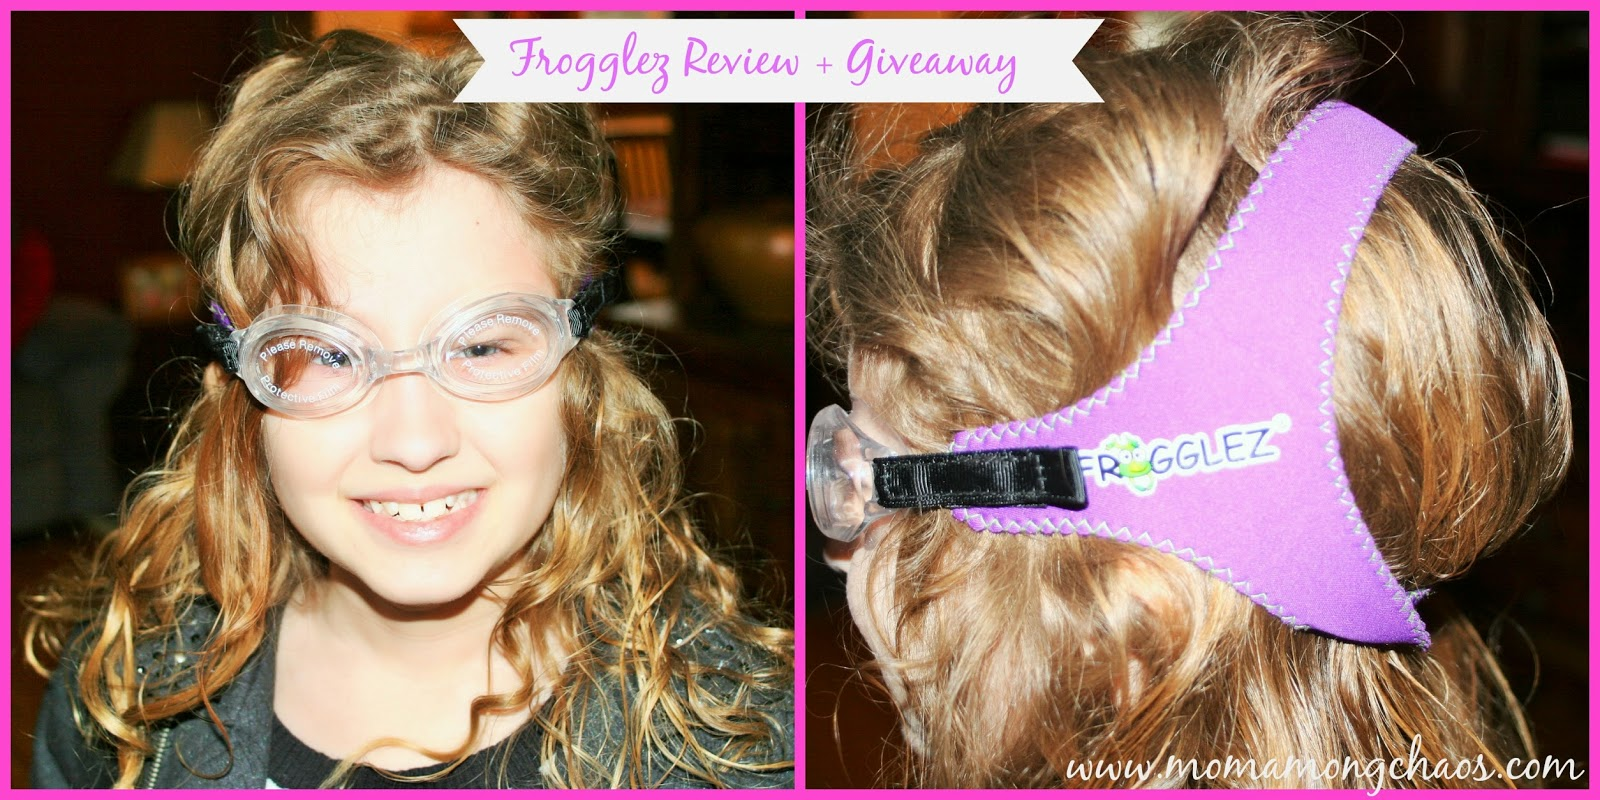 review, goggles, frogglez, giveaway, free, USA, swimming